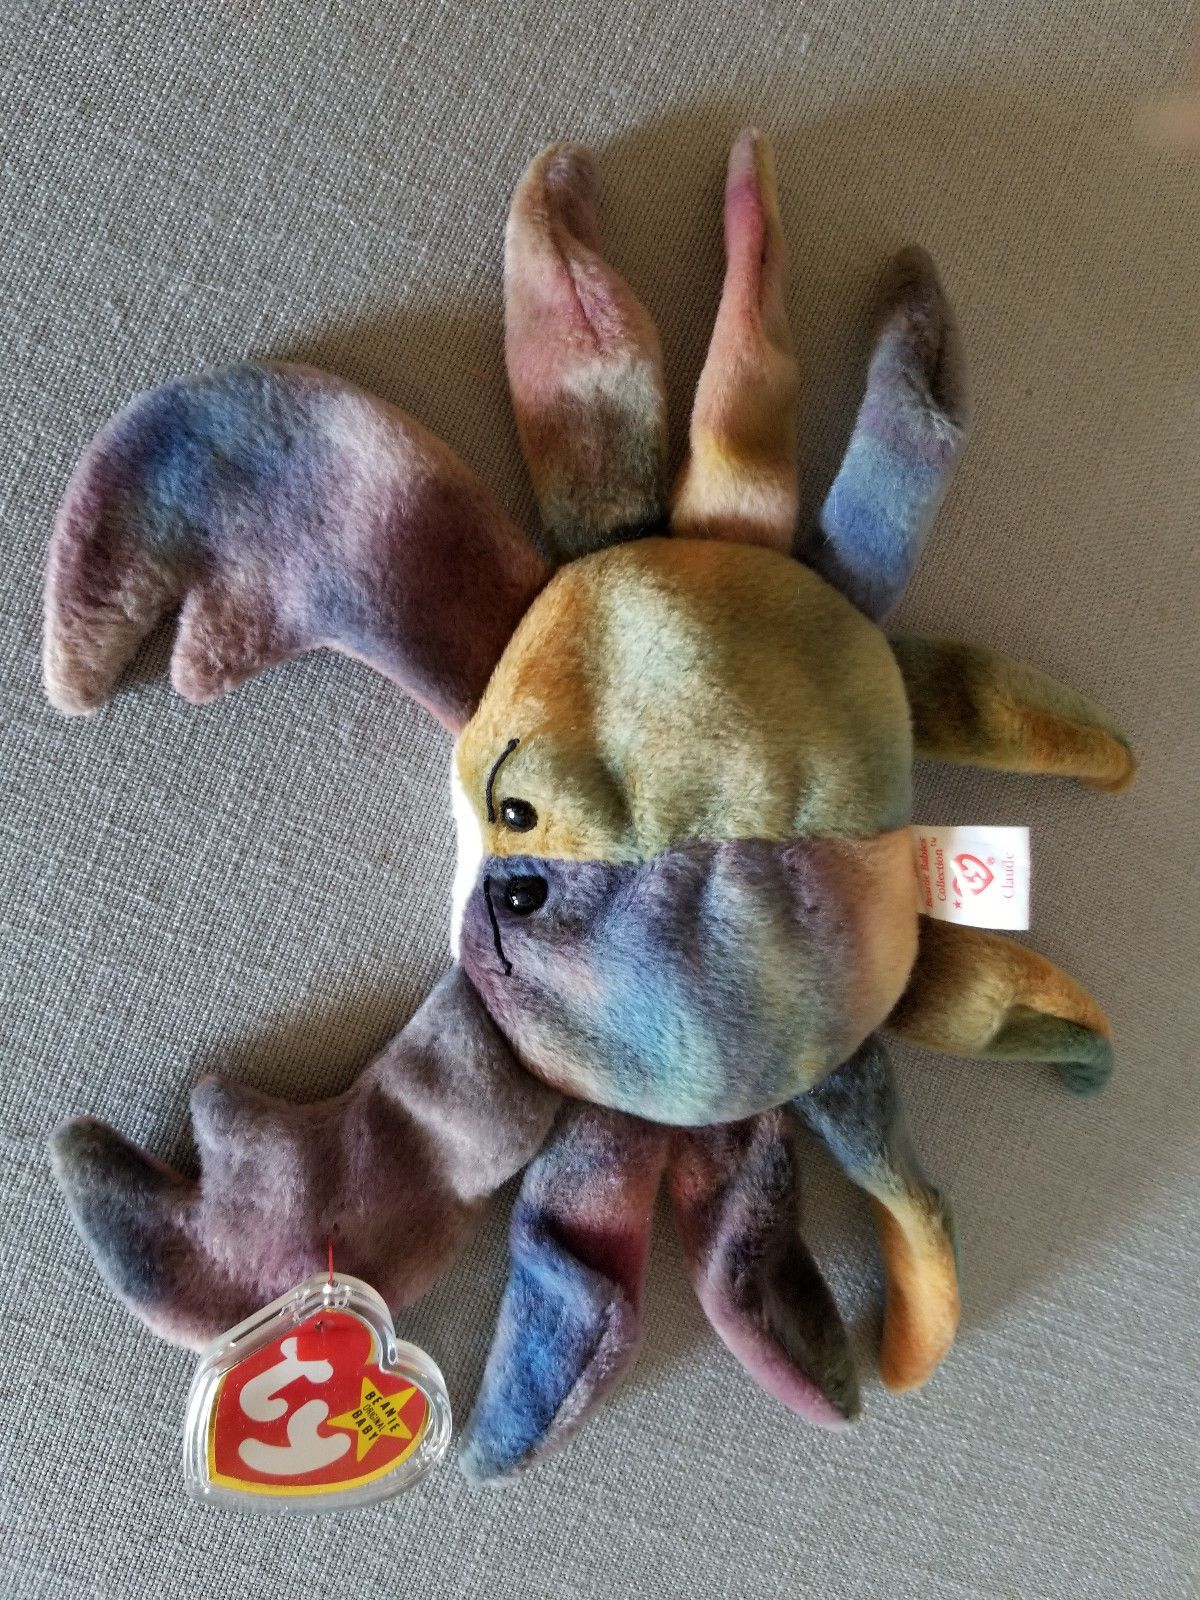 bf87c74b081 Retired 440  Beanie Babies Claude The Tye Dye Crab 1996 Ty Original Tag  Attached W Errors New -  BUY IT NOW ONLY   253 on  eBay  retired  beanie   babies ...